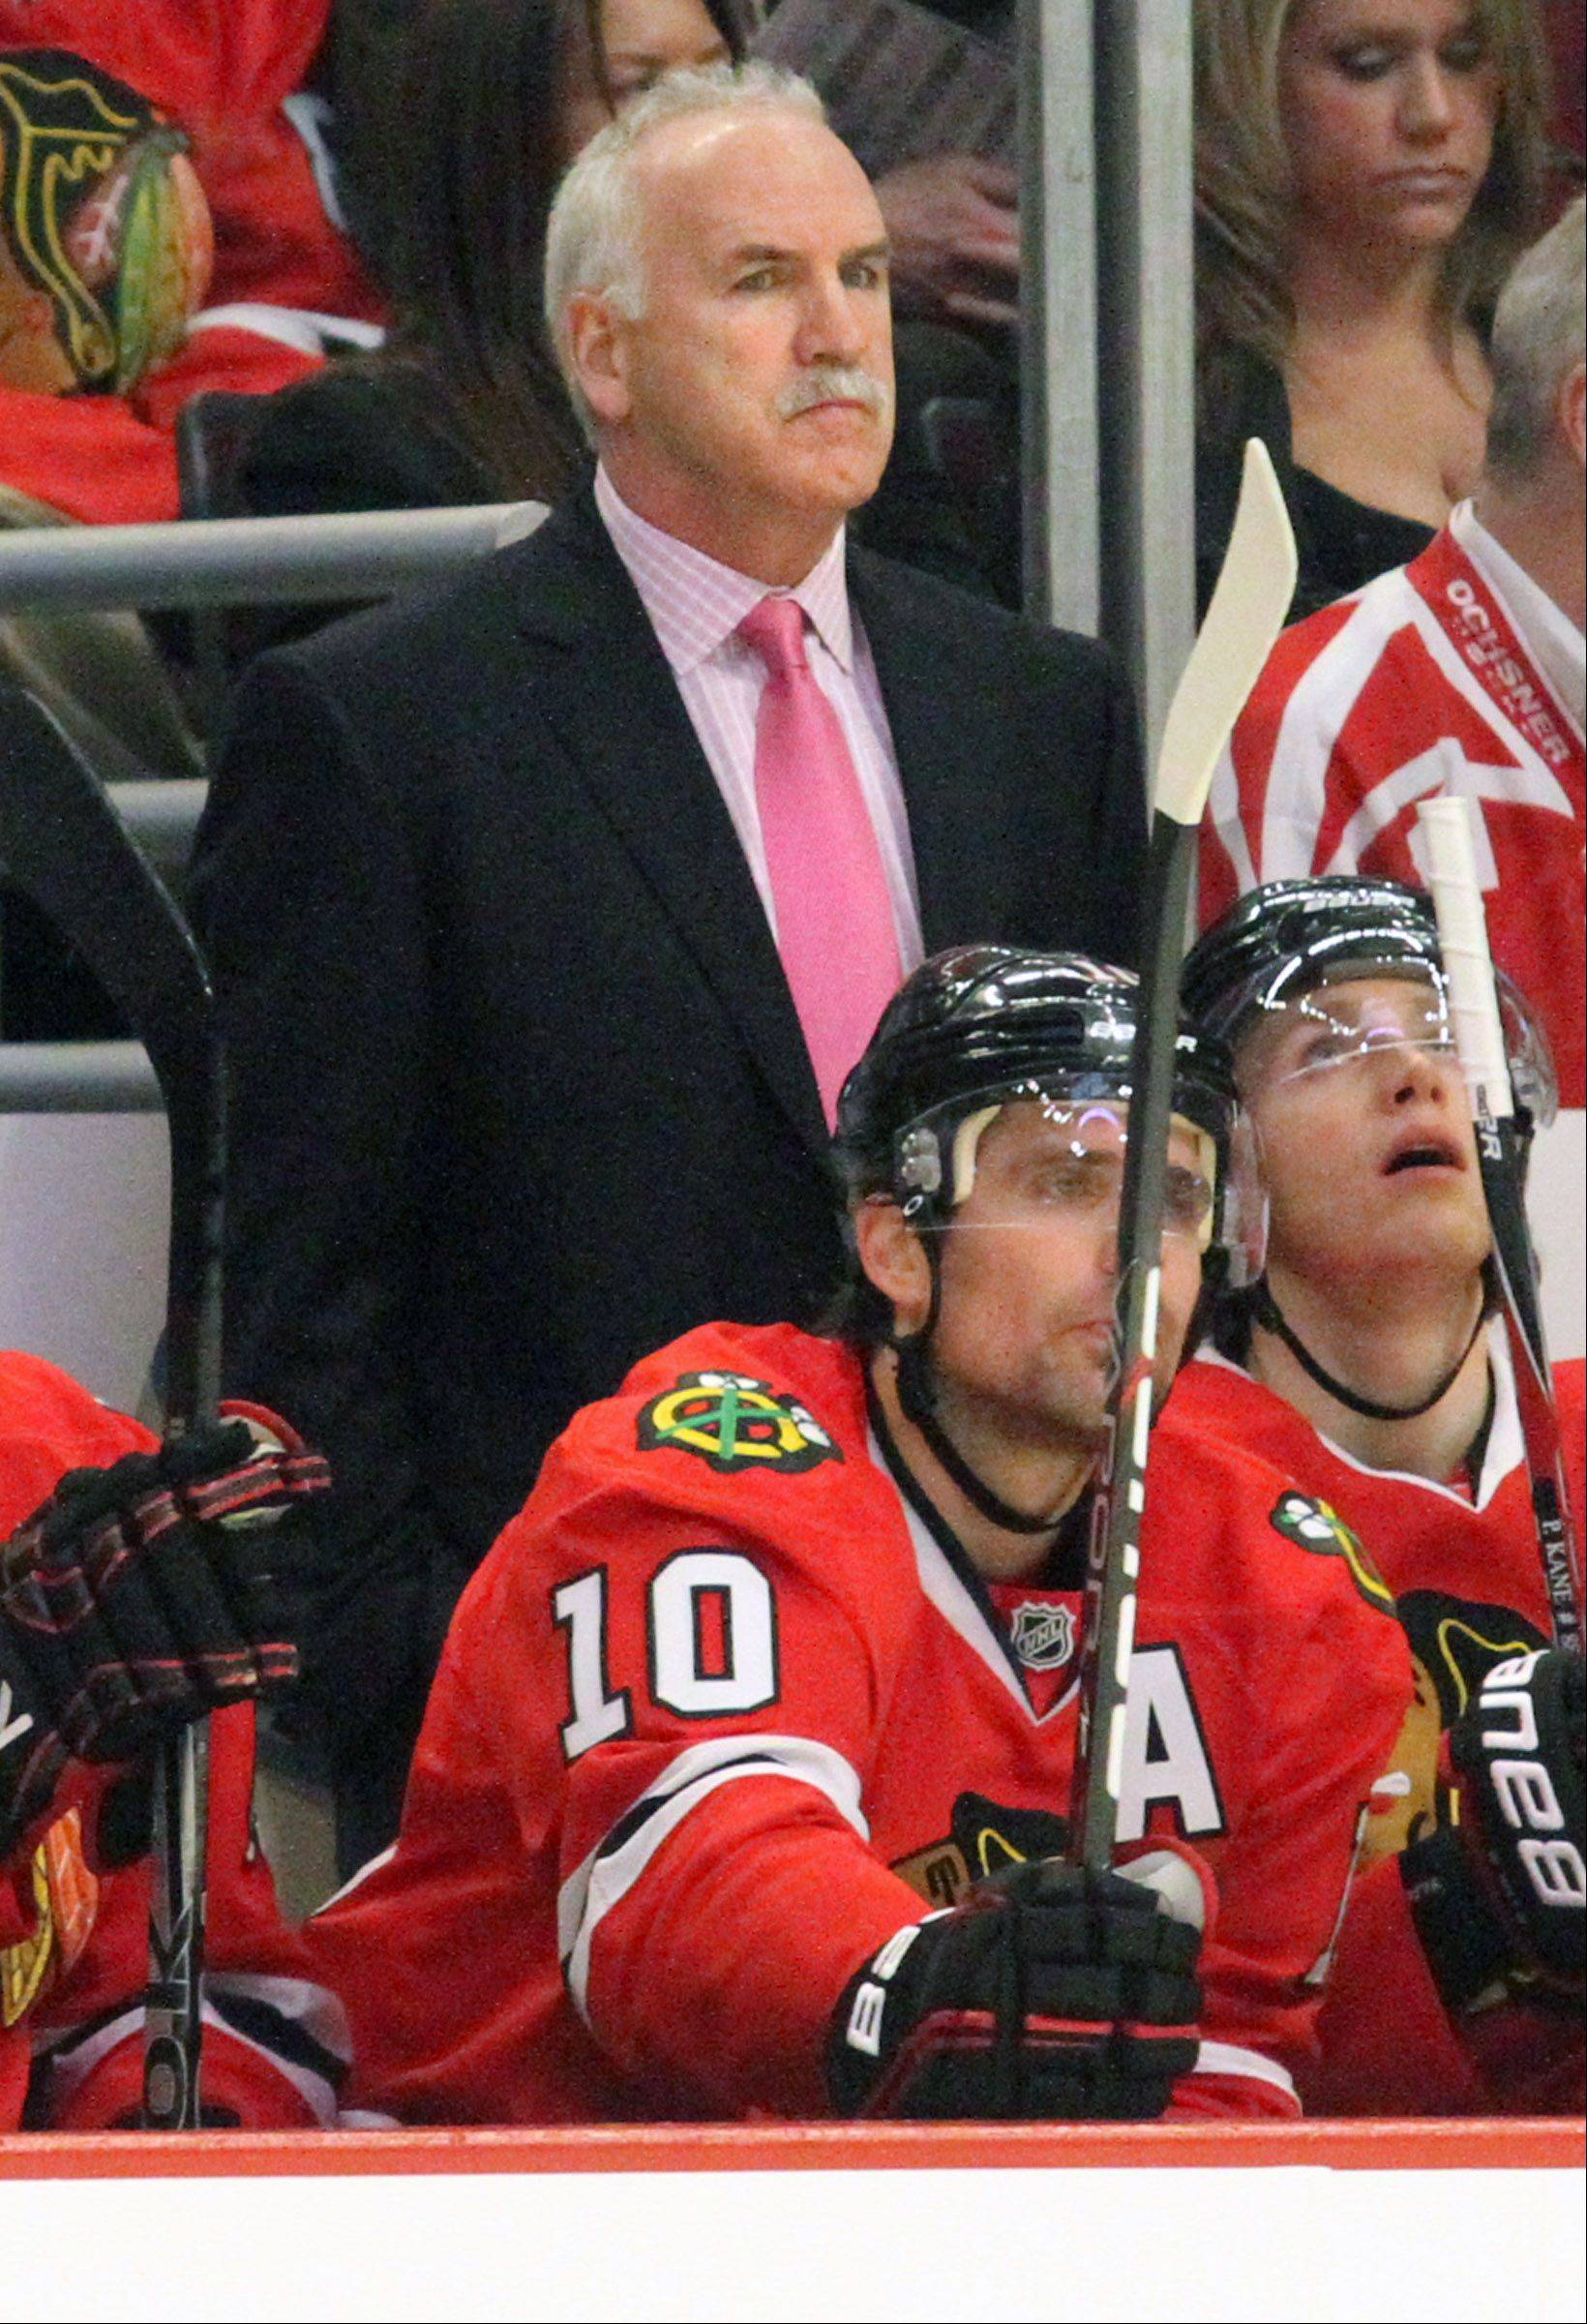 While some critics question the toughness of his Blackhawks roster, head coach Joel Quenneville says he defines toughness by players who don't lose their focus as they stick to their puck possession game.